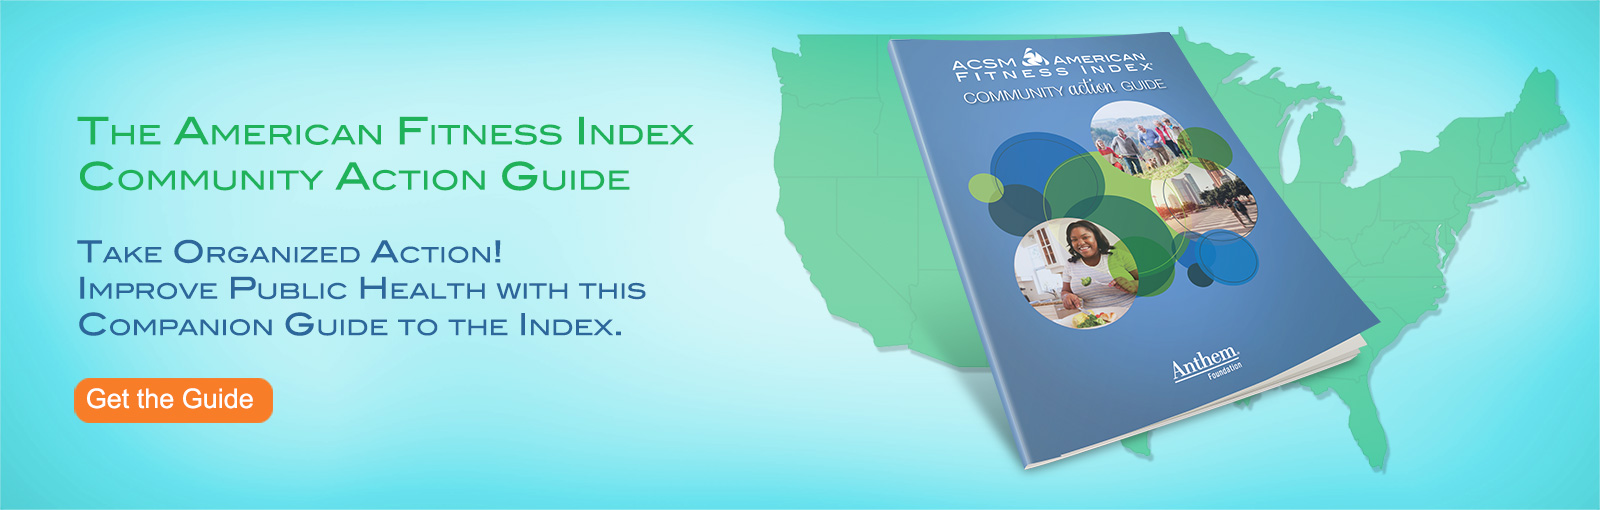 American Fitness Index Community Action Guide